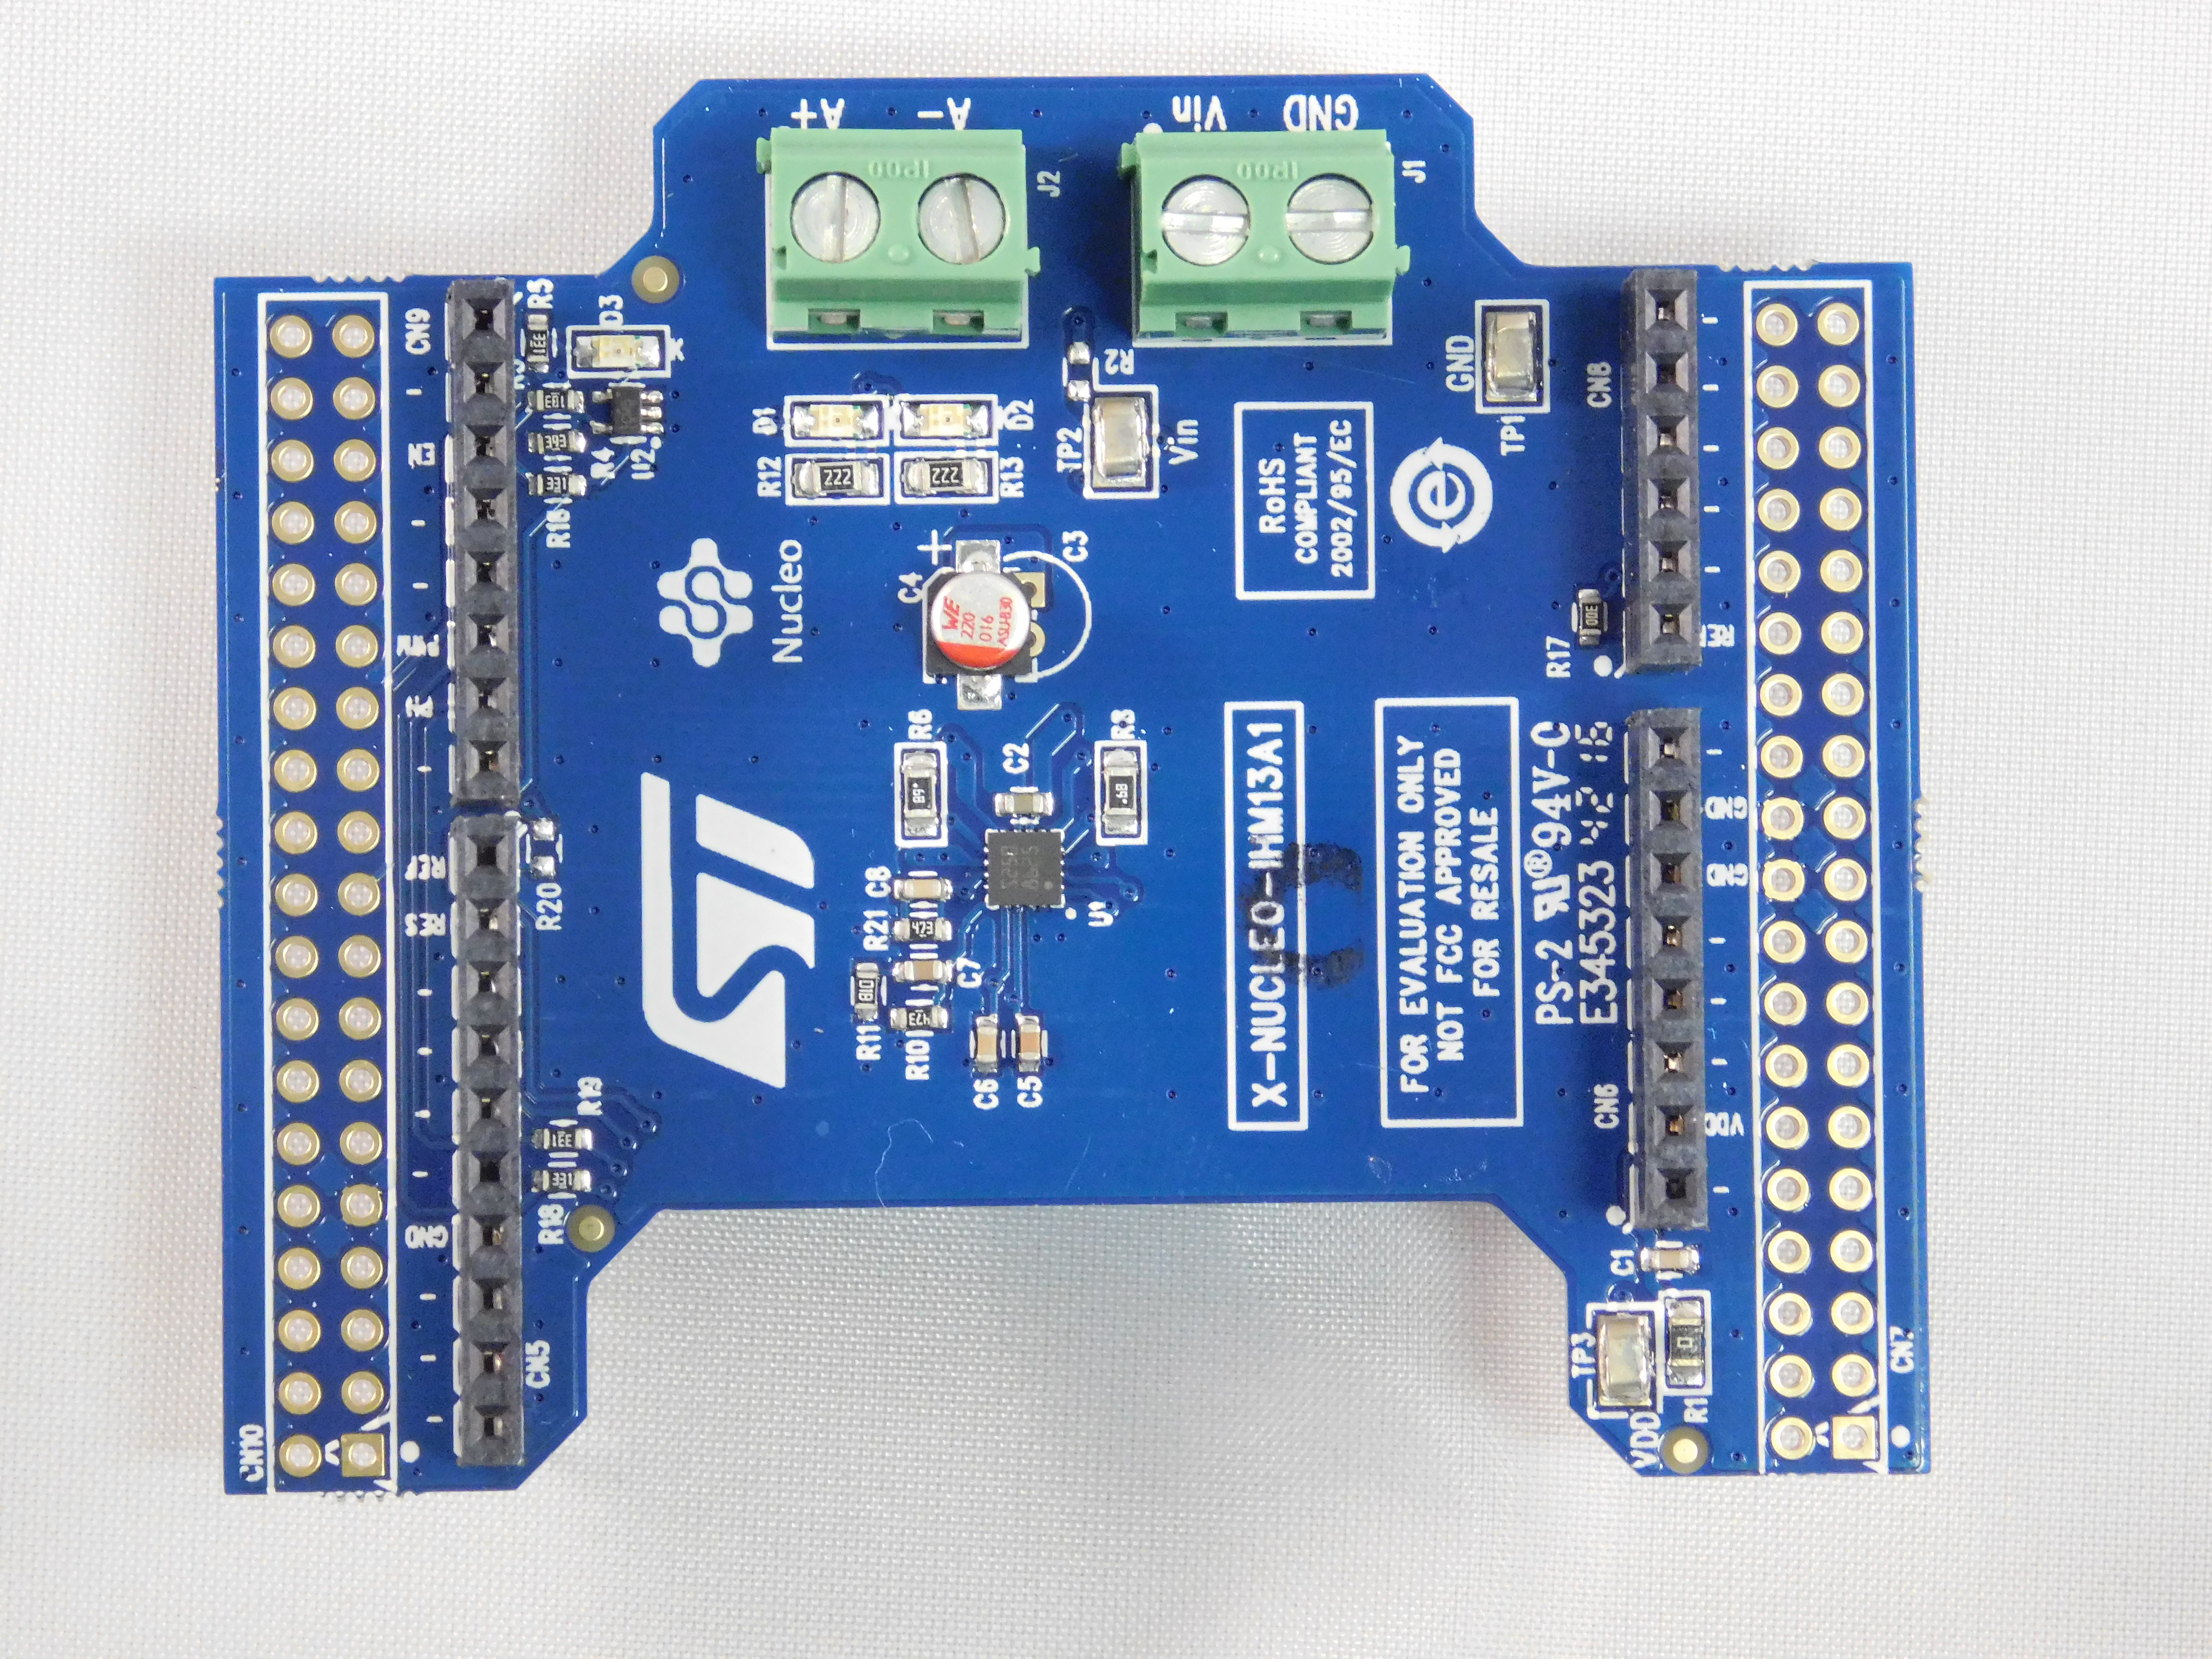 Low voltage brush DC motor driver expansion board for STM32 Nucleo based on the STSPIN250